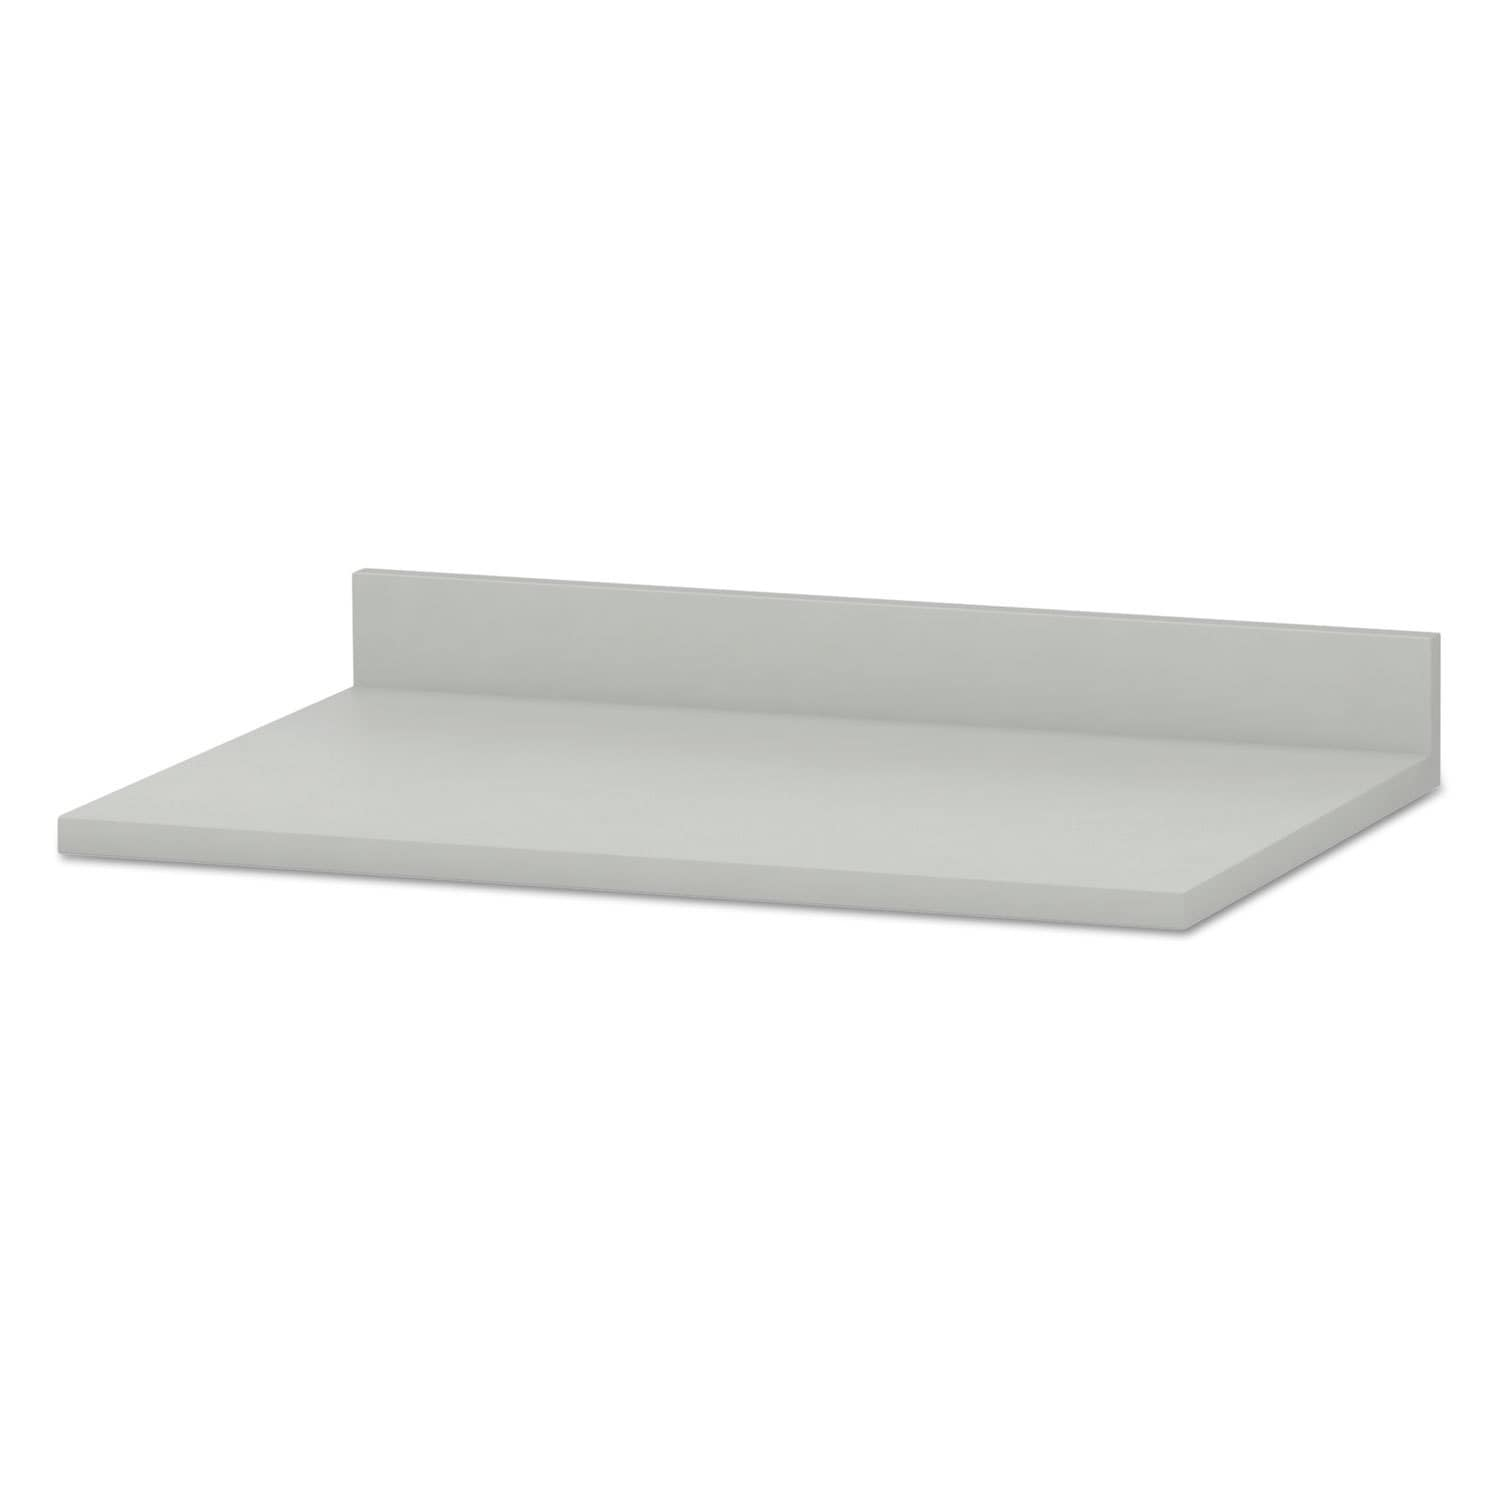 HON Hospitality Cabinet Modular Countertop 36-inch wide x...